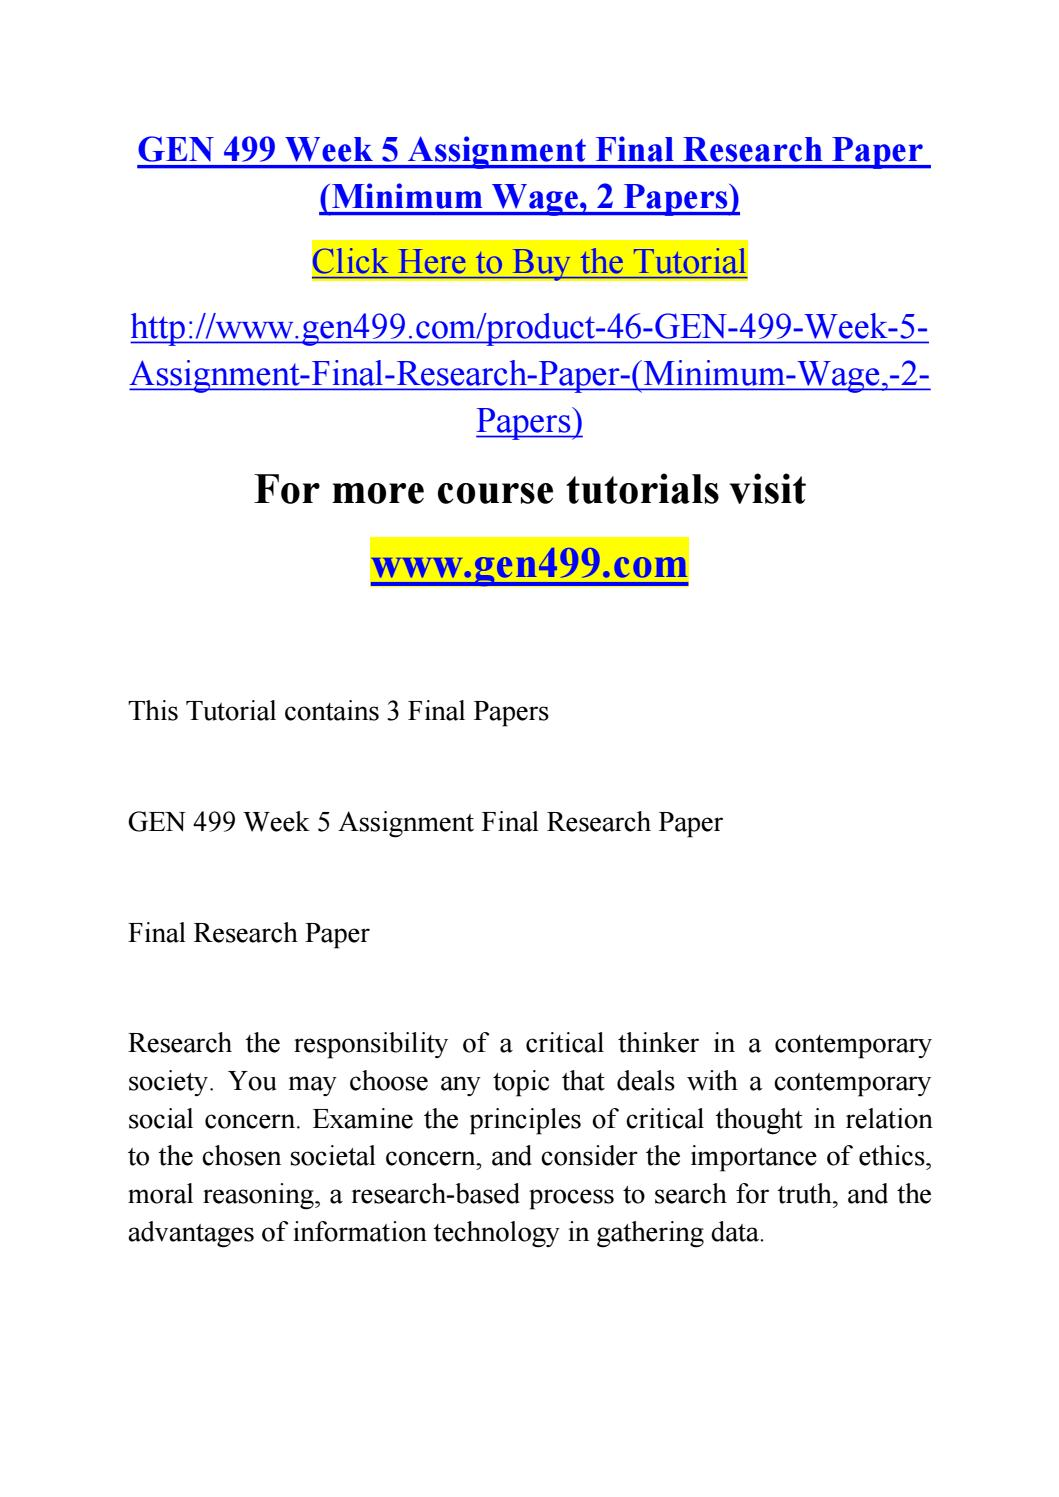 017 Research Paper Page 1 Minimum Wage Astounding Topics Full